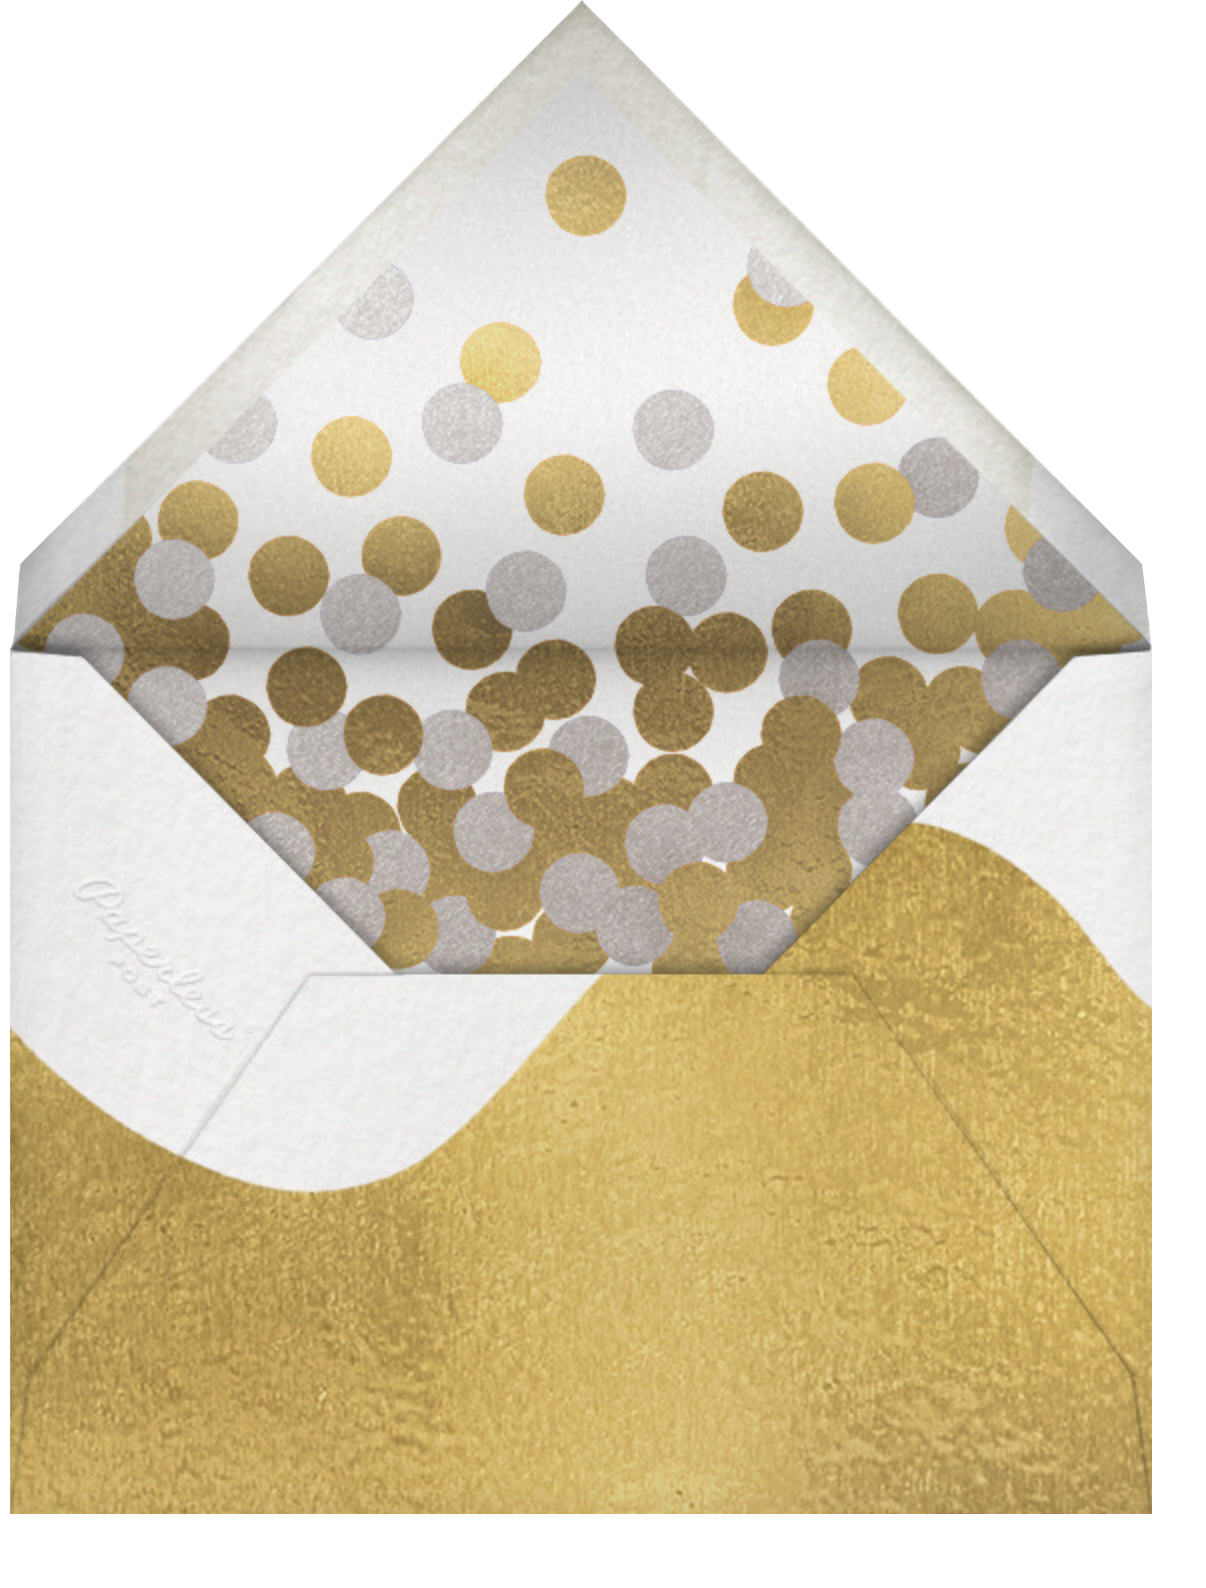 Stencilled Celebration (Multi-Photo) - Gold - Paperless Post - Holiday cards - envelope back